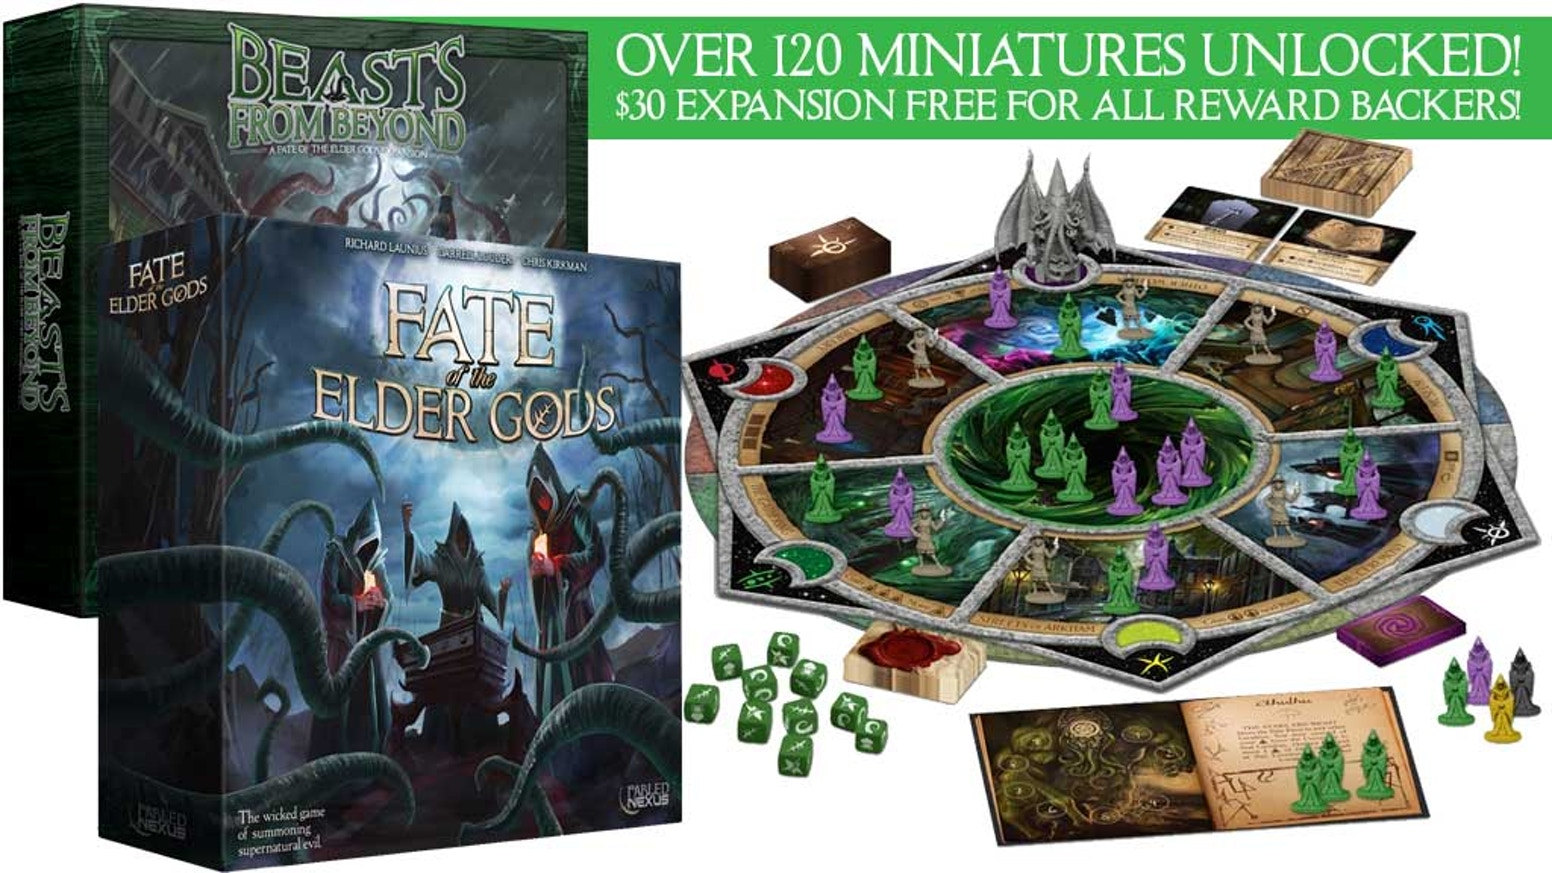 Fate of the elder gods the boardgame of lovecraftian cults by the wicked 1 4 player game of summoning supernatural evil in 60 90 minutes buycottarizona Choice Image